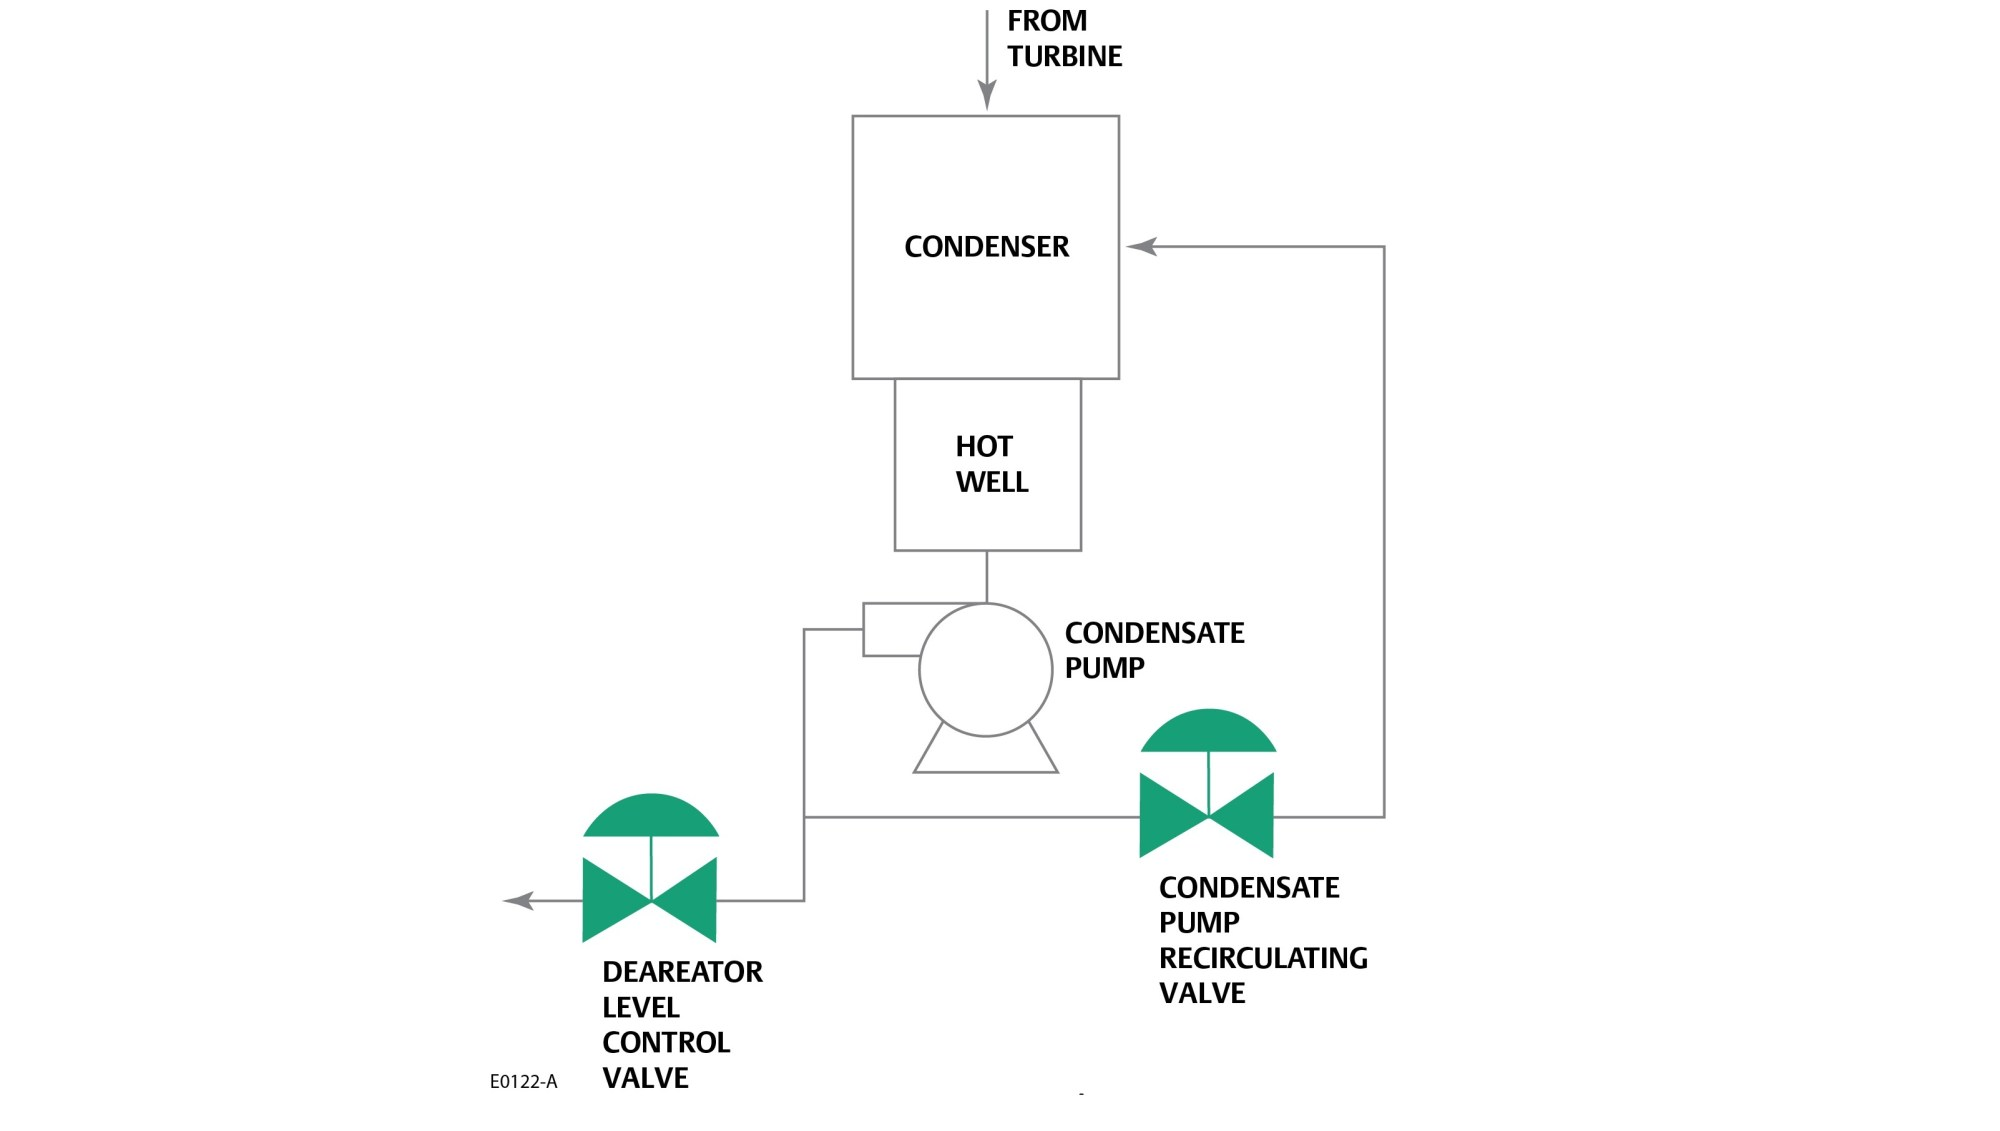 hight resolution of valve controls bypass flow from pump outlet back to some lower pressure point this bypass flow prevents overheating and cavitation